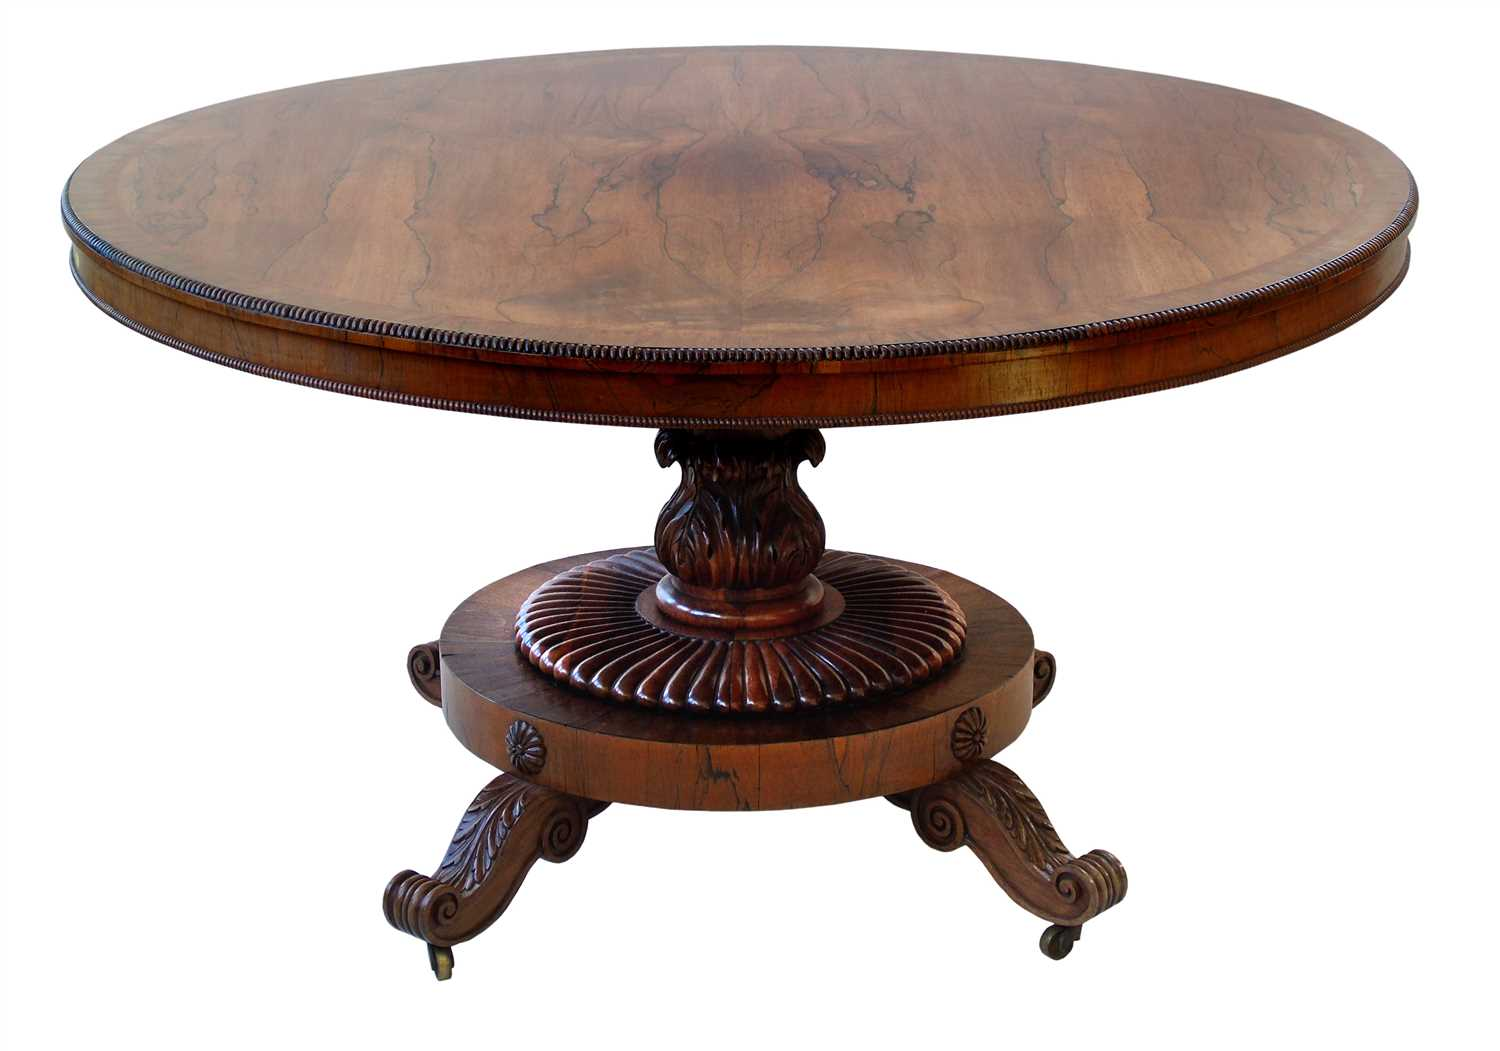 616 - William IV rosewood loo table.